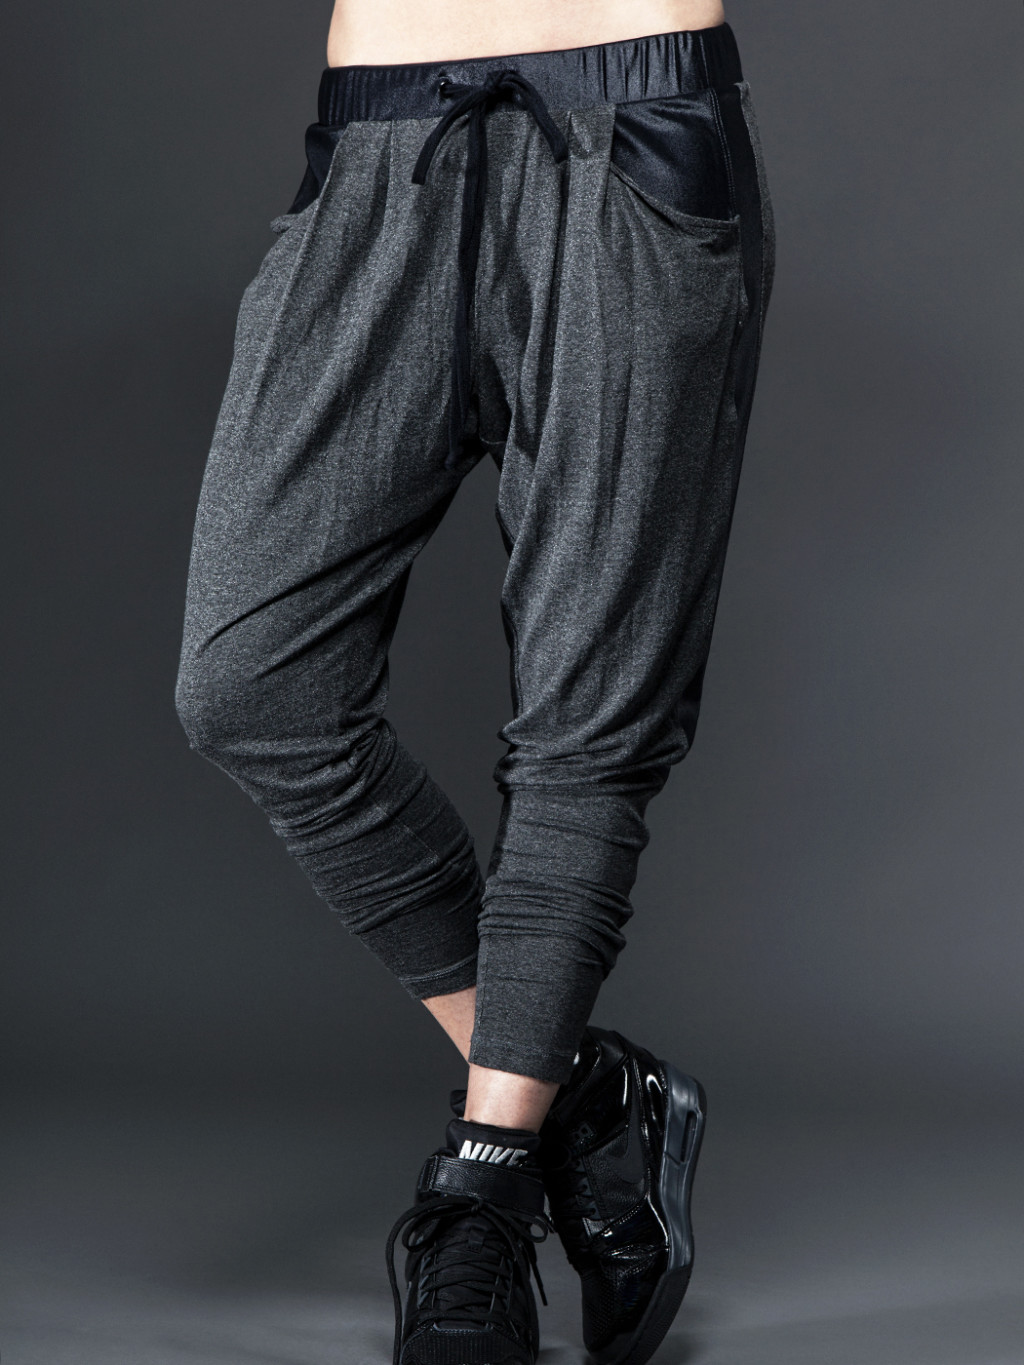 rail sweatpants amy tara koch